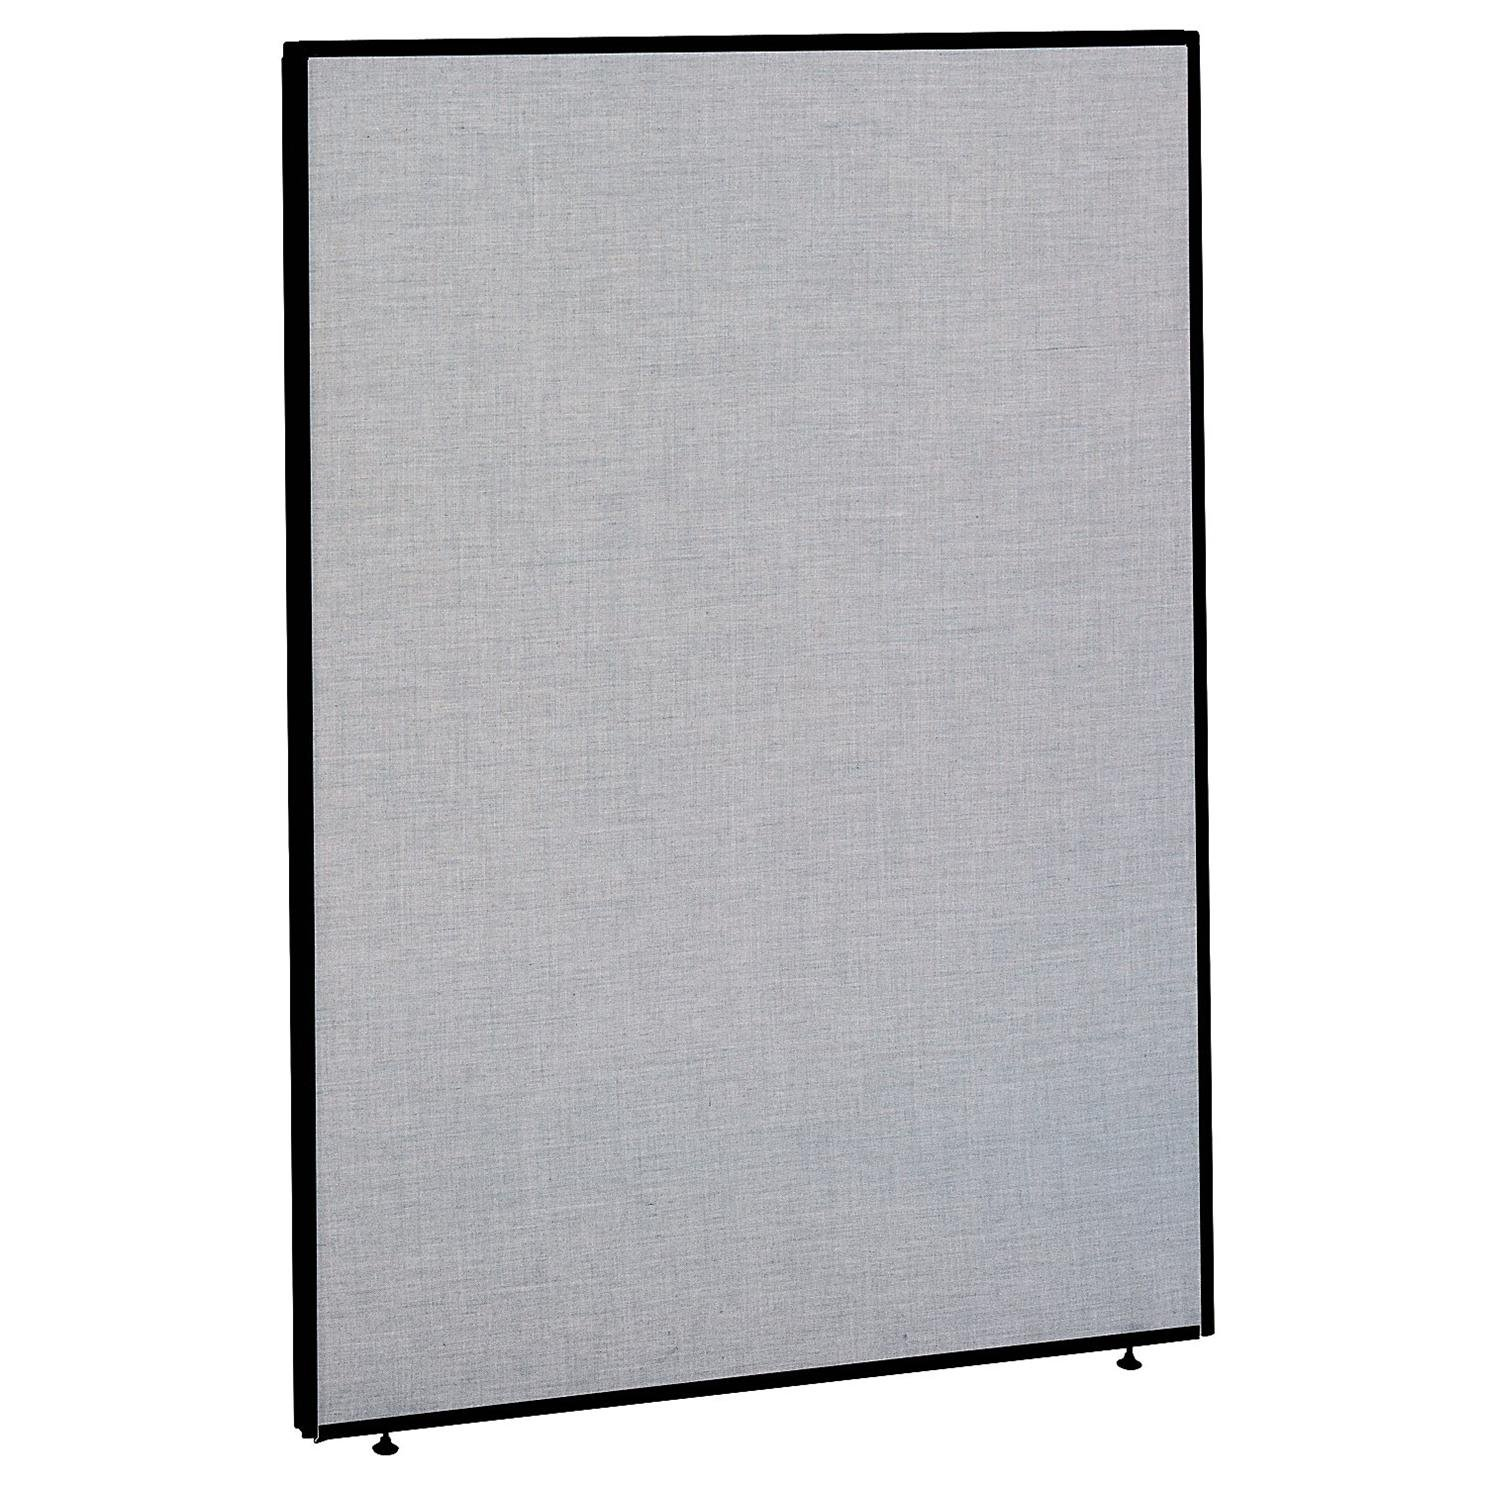 PRO PANELS 66-inch H X 48-inch W